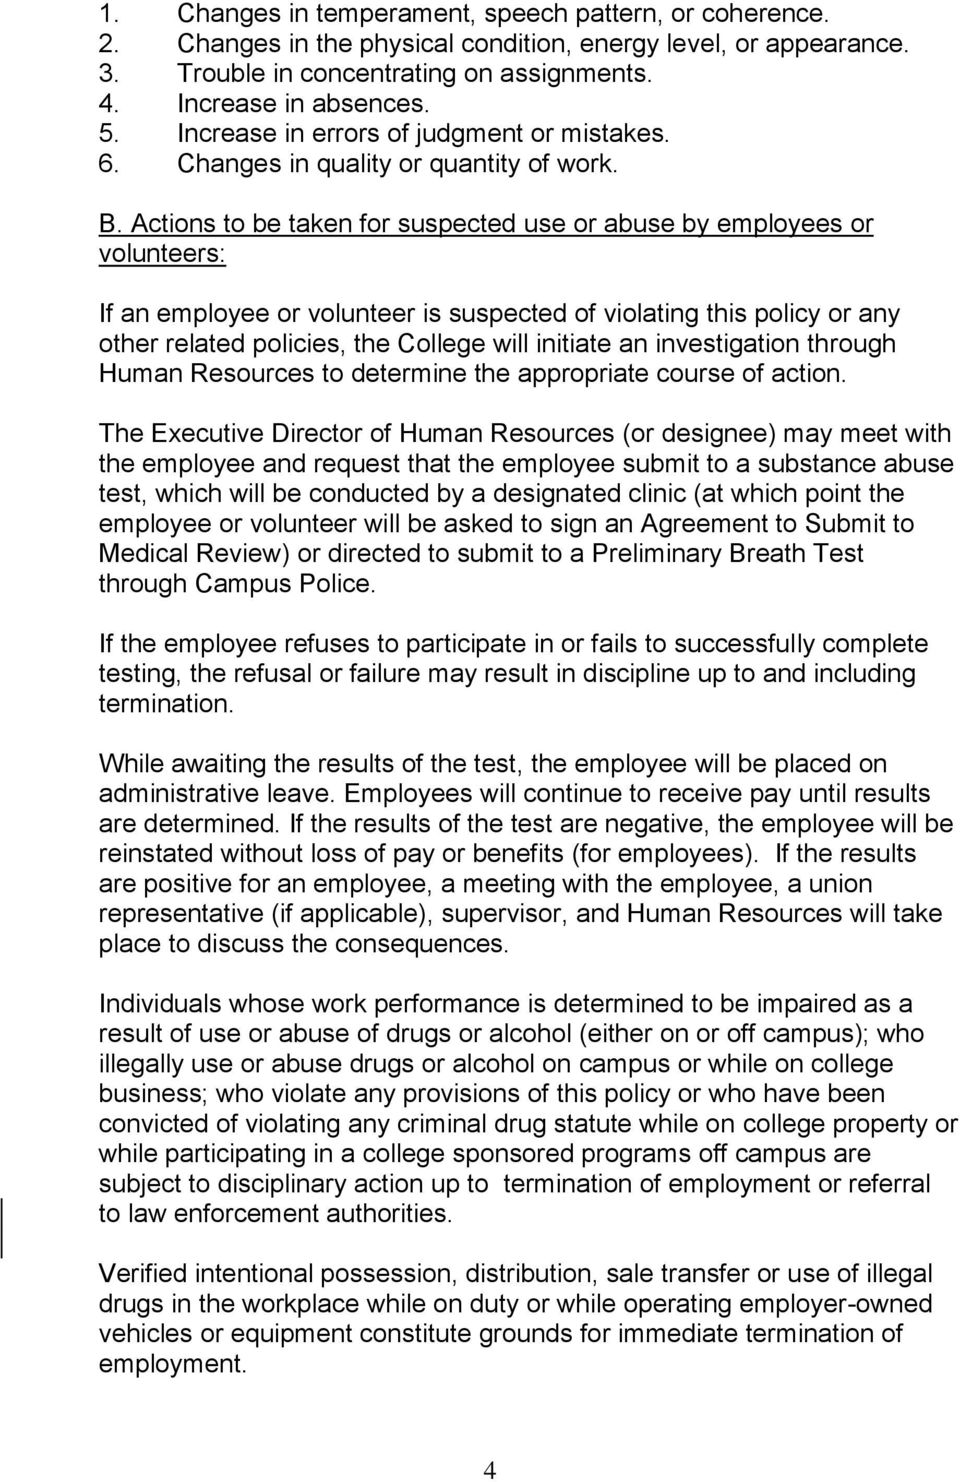 Actions to be taken for suspected use or abuse by employees or volunteers: If an employee or volunteer is suspected of violating this policy or any other related policies, the College will initiate